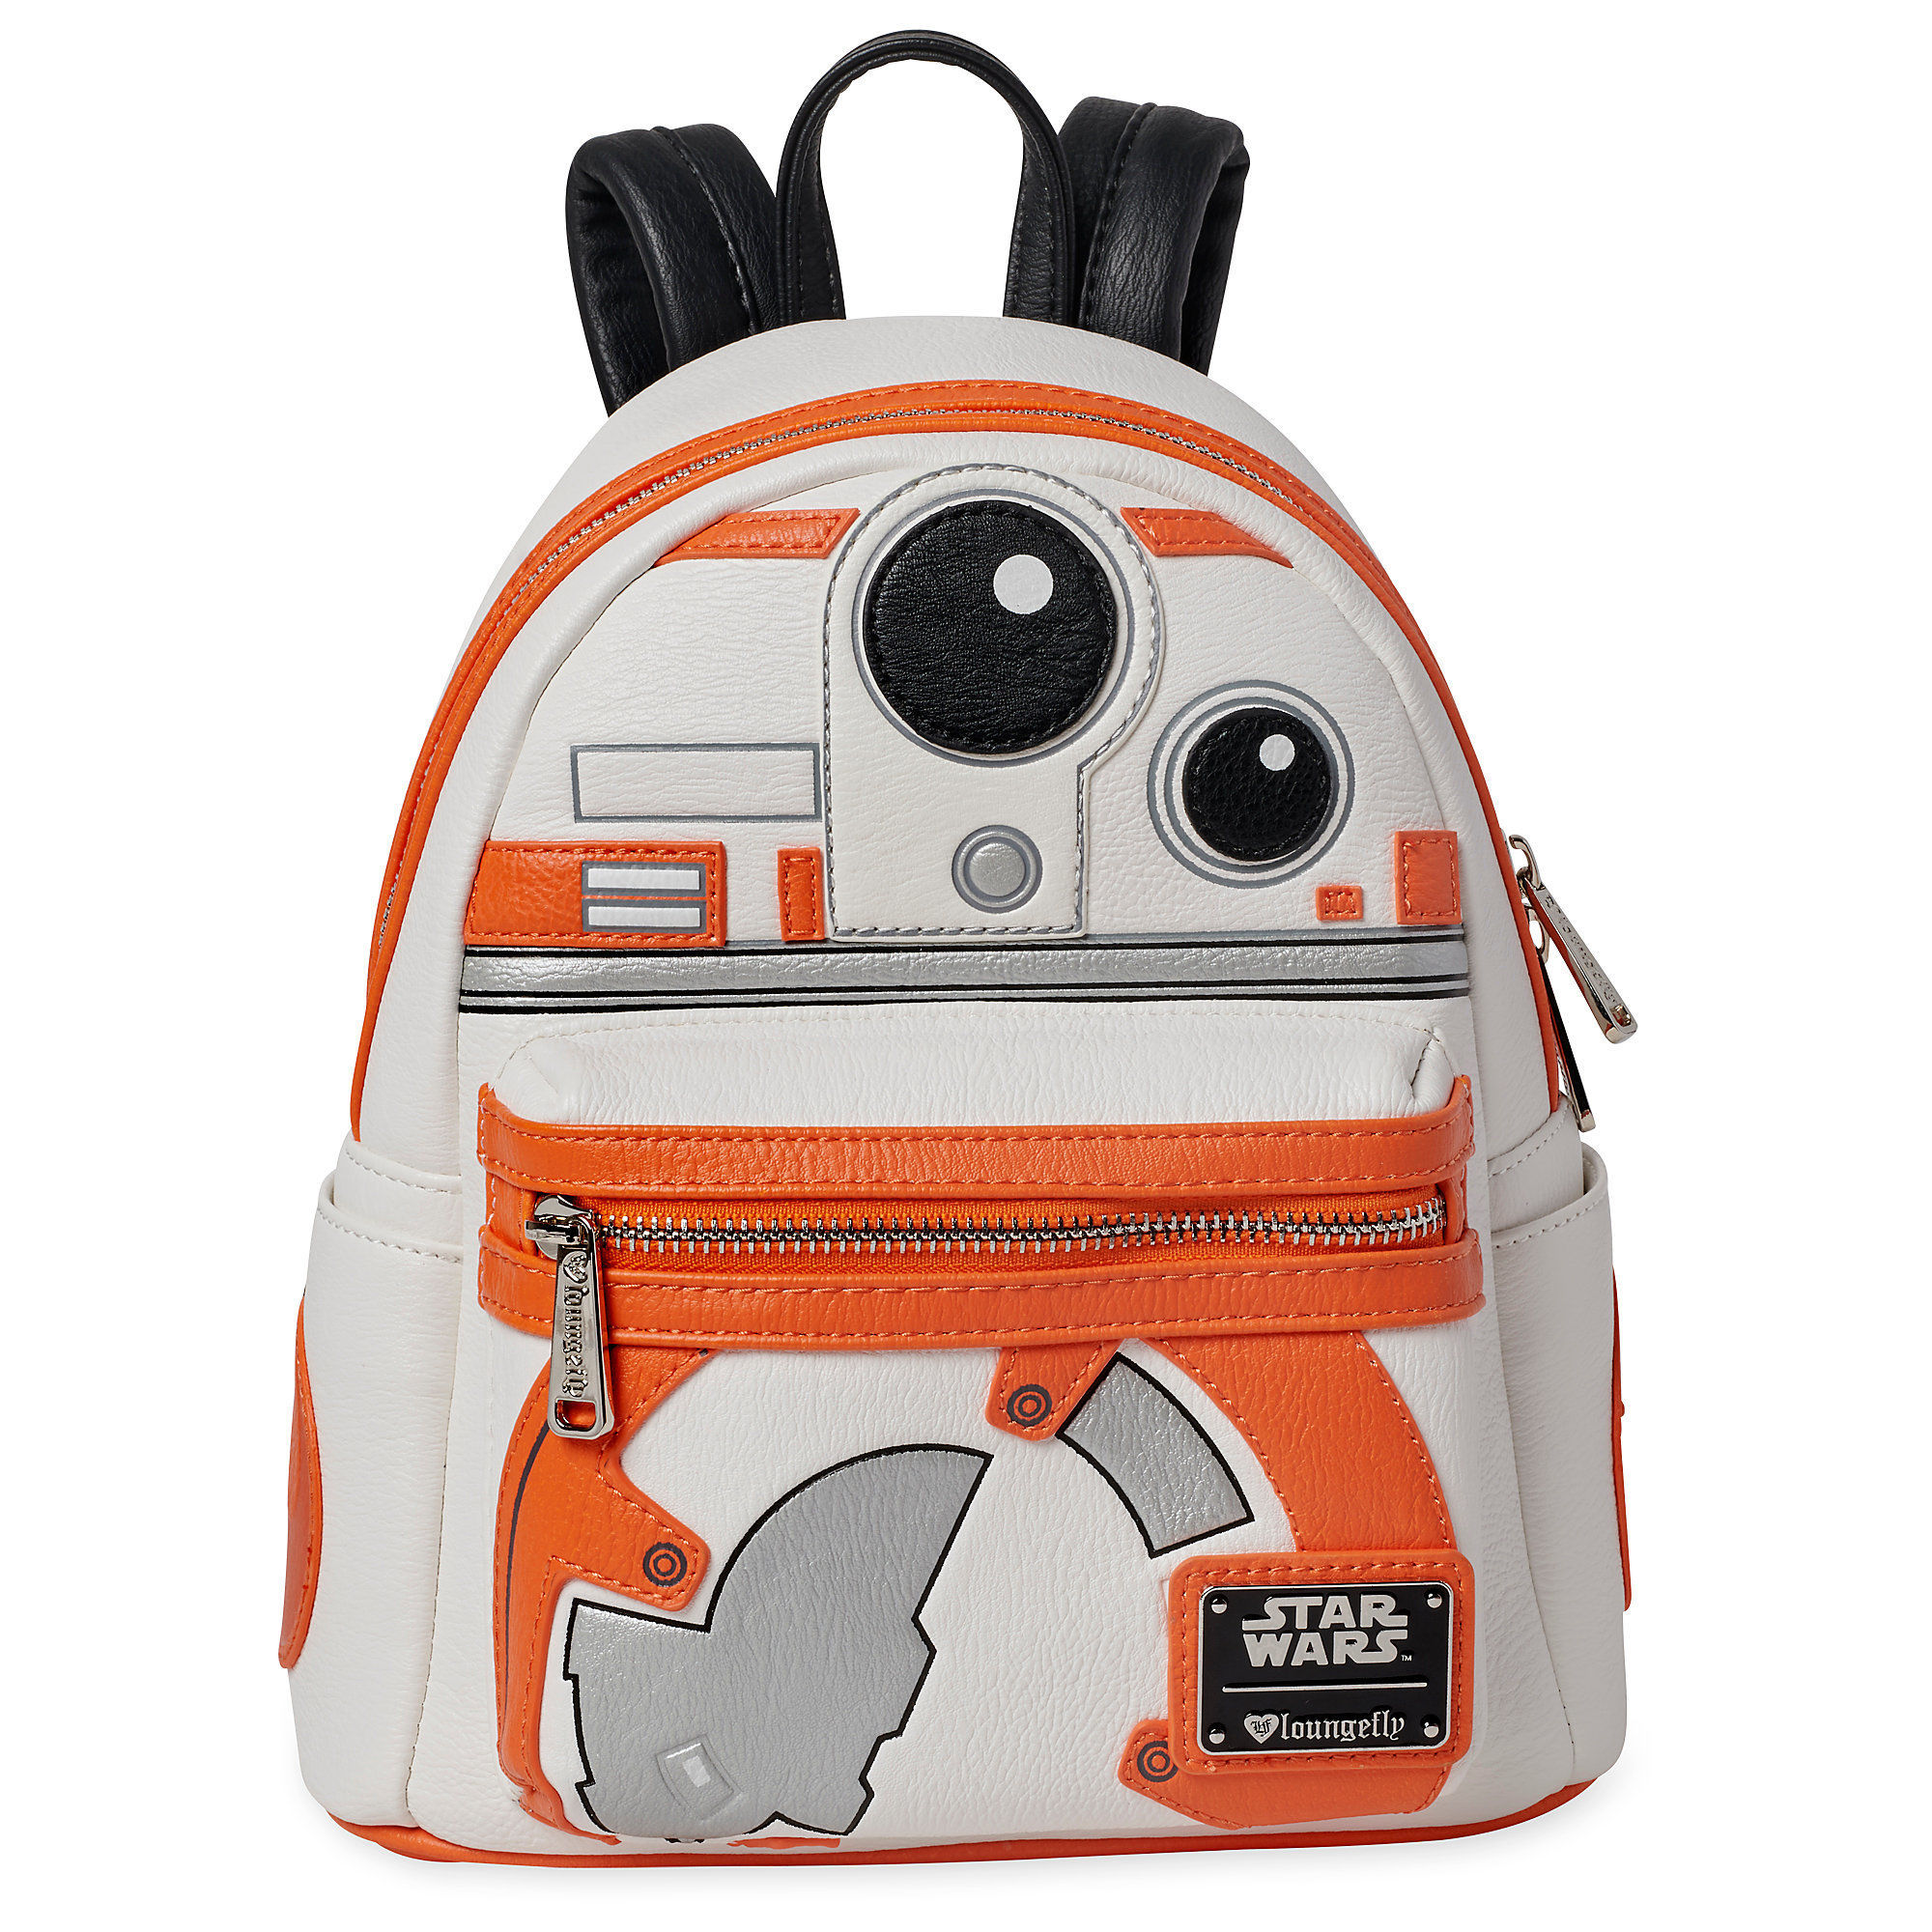 Loungefly x Star Wars BB-8 Faux Leather Mini Backpack at Shop Disney